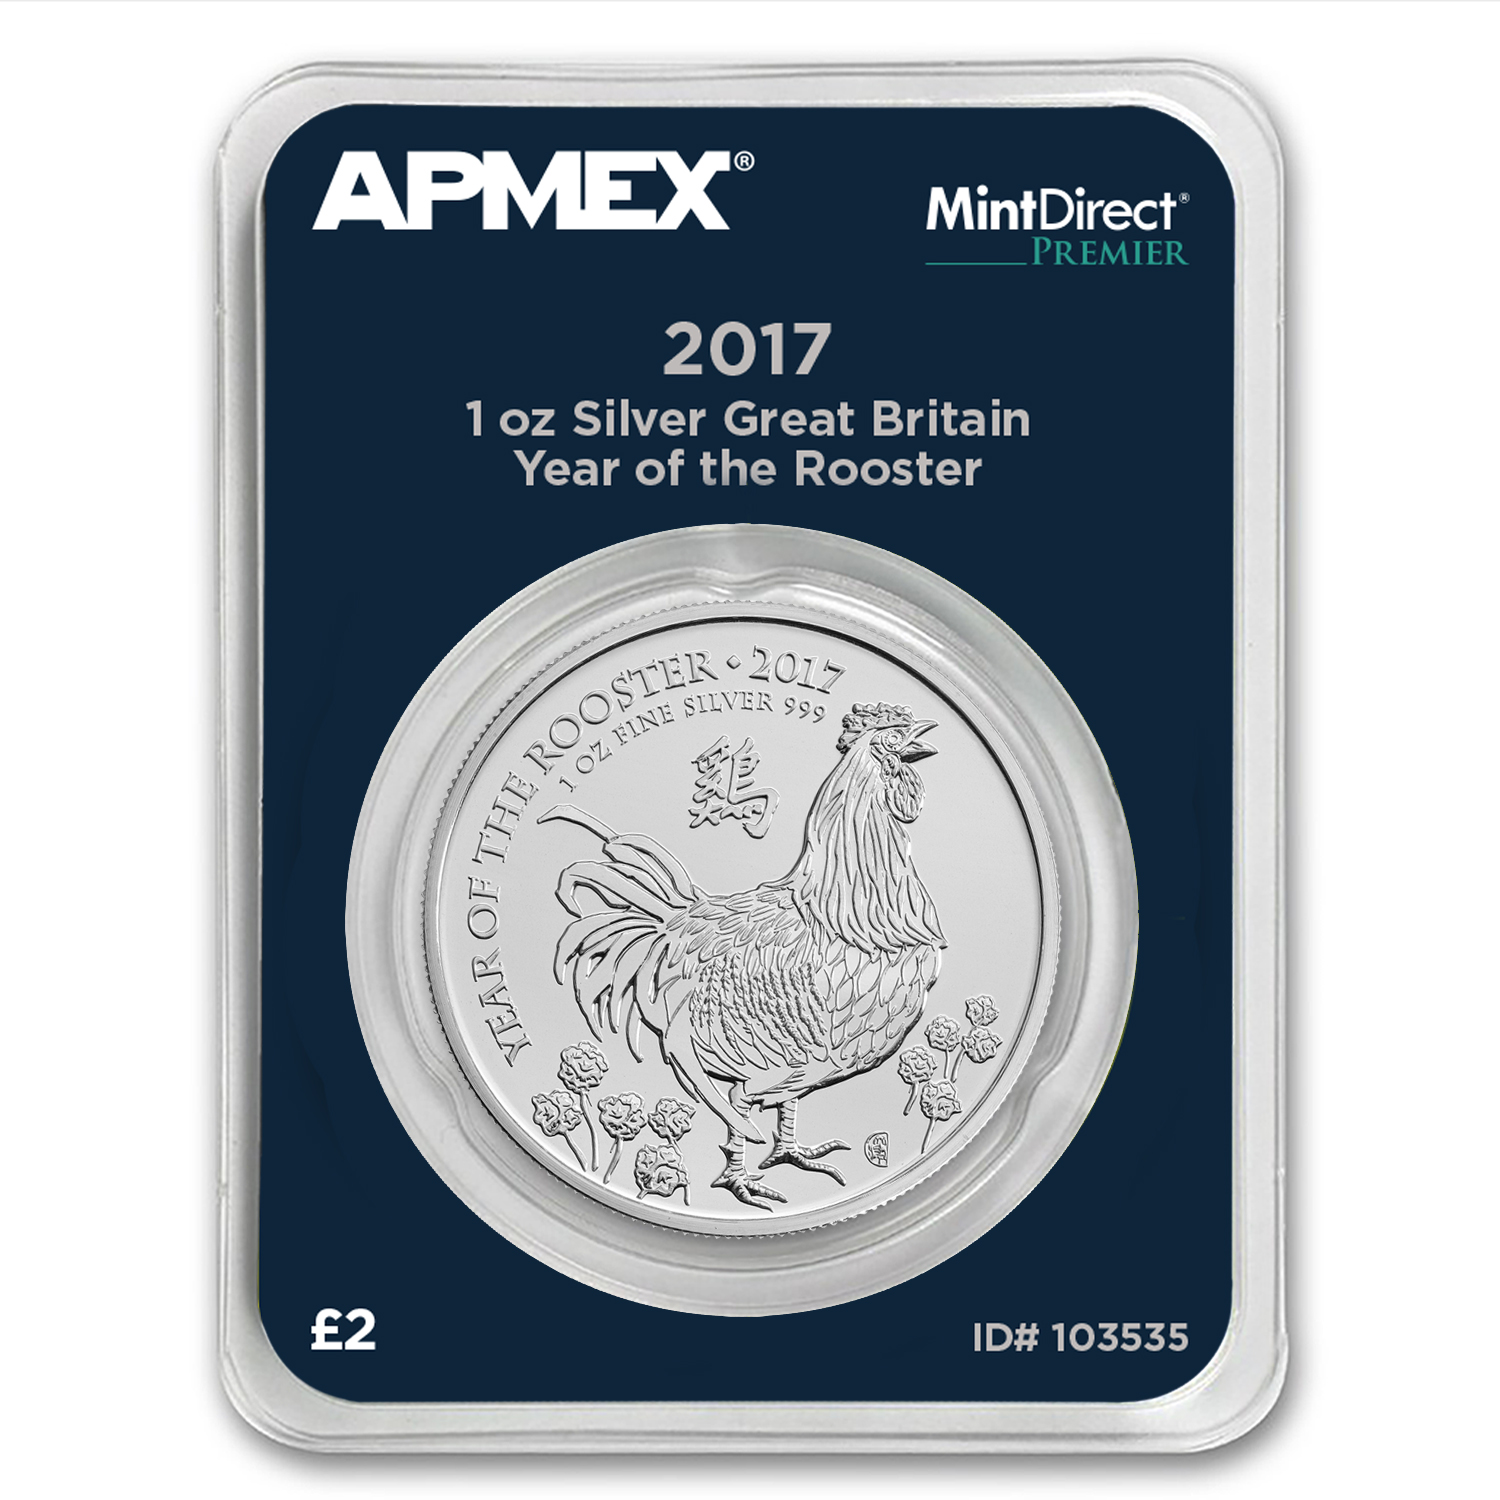 2017 GB 1 oz Silver Year of the Rooster (MD® Premier Single)